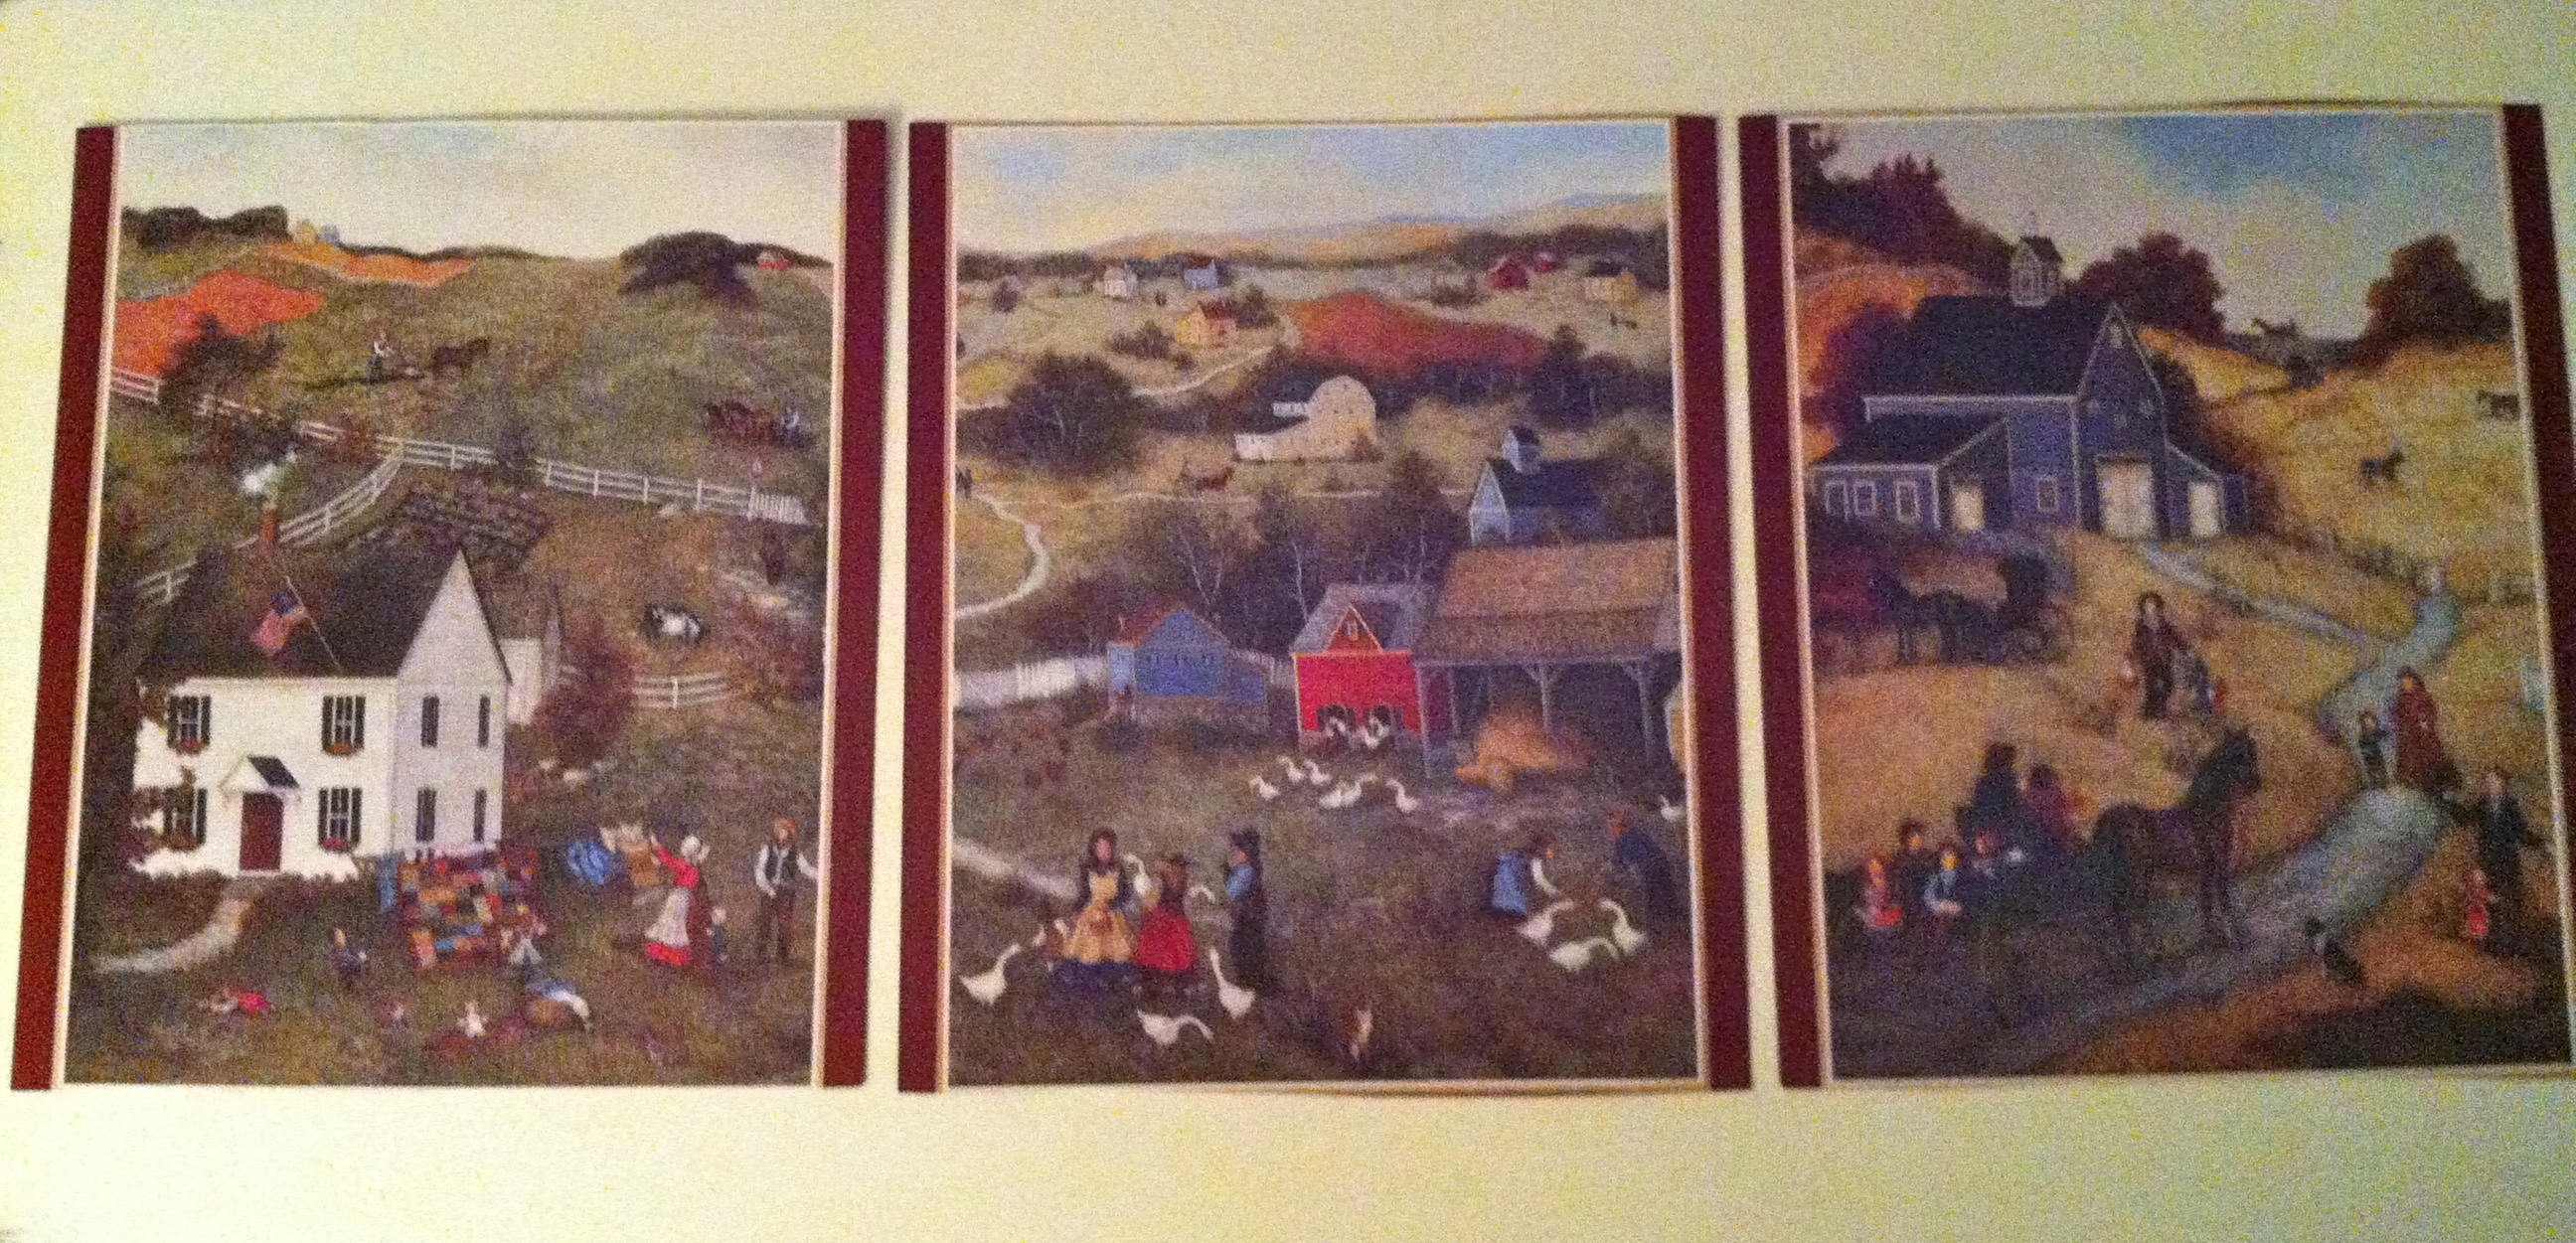 6 Prints Two Sided – Americana Primitive Art Prints/set Of Pertaining To Newest American Folk Art Framed Prints (View 12 of 15)